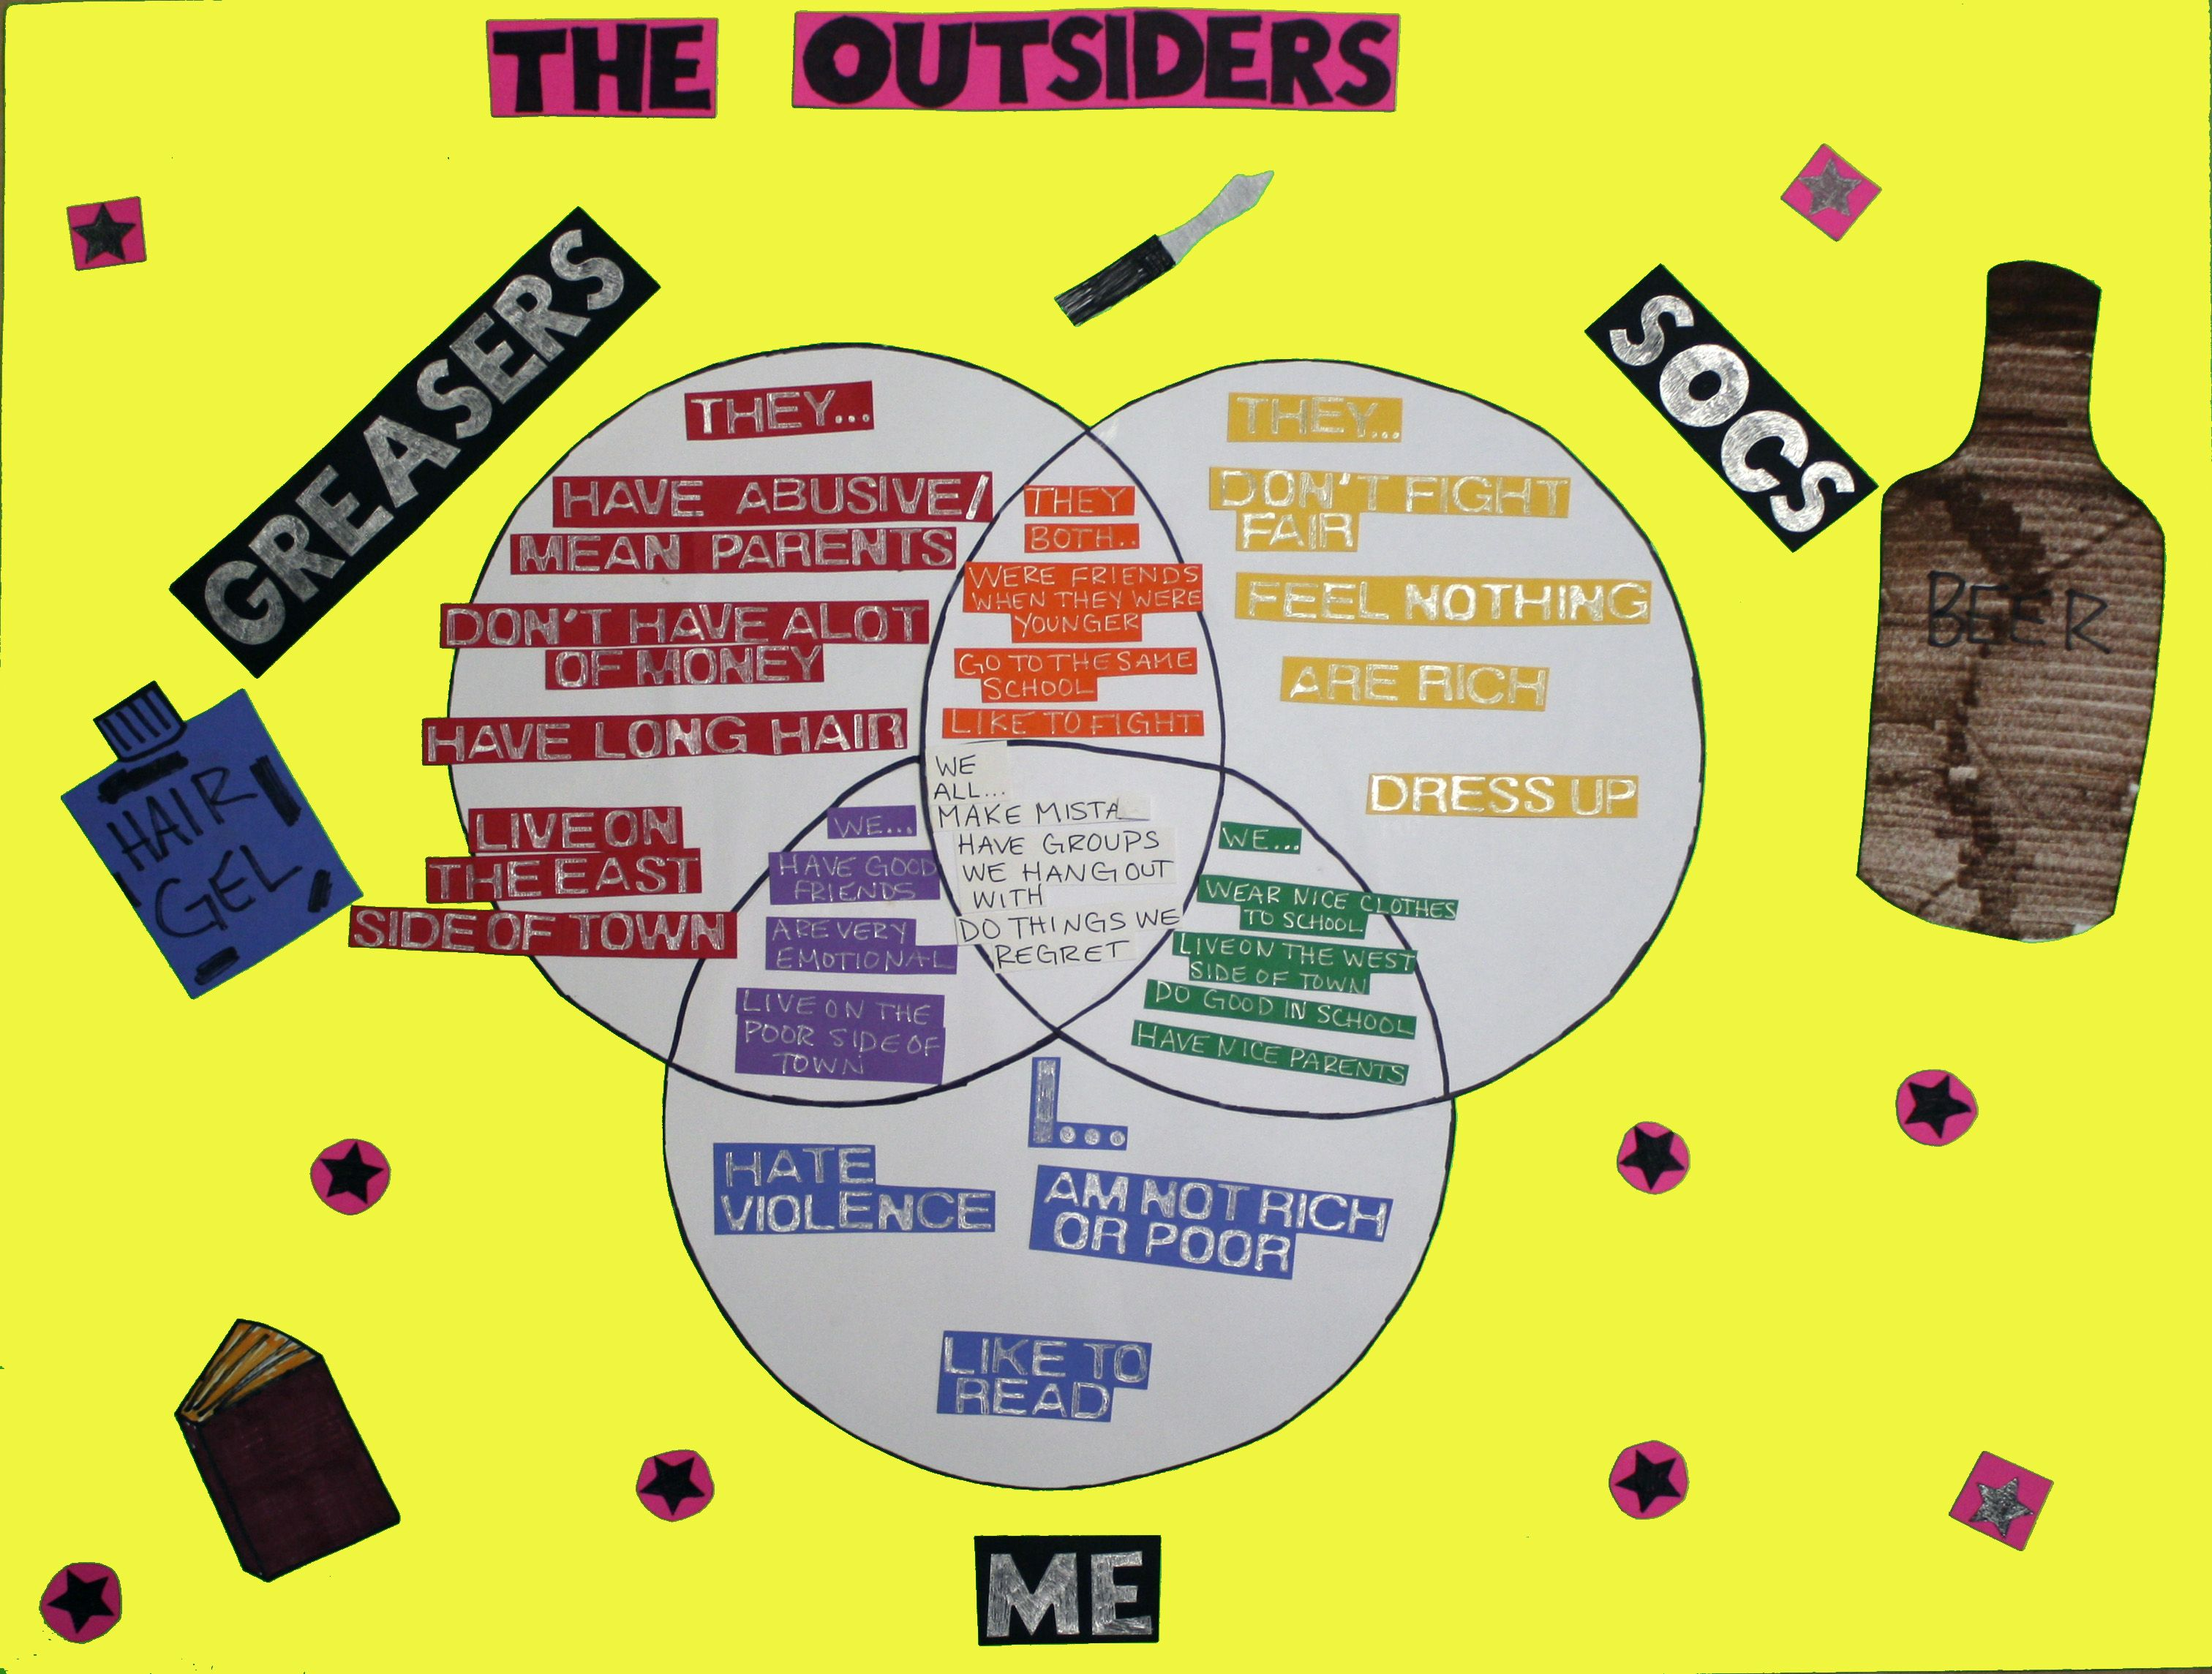 the outsiders by s e hinton final project compare and contrast project the outsiders by s e hinton final project idea your students will stretch their